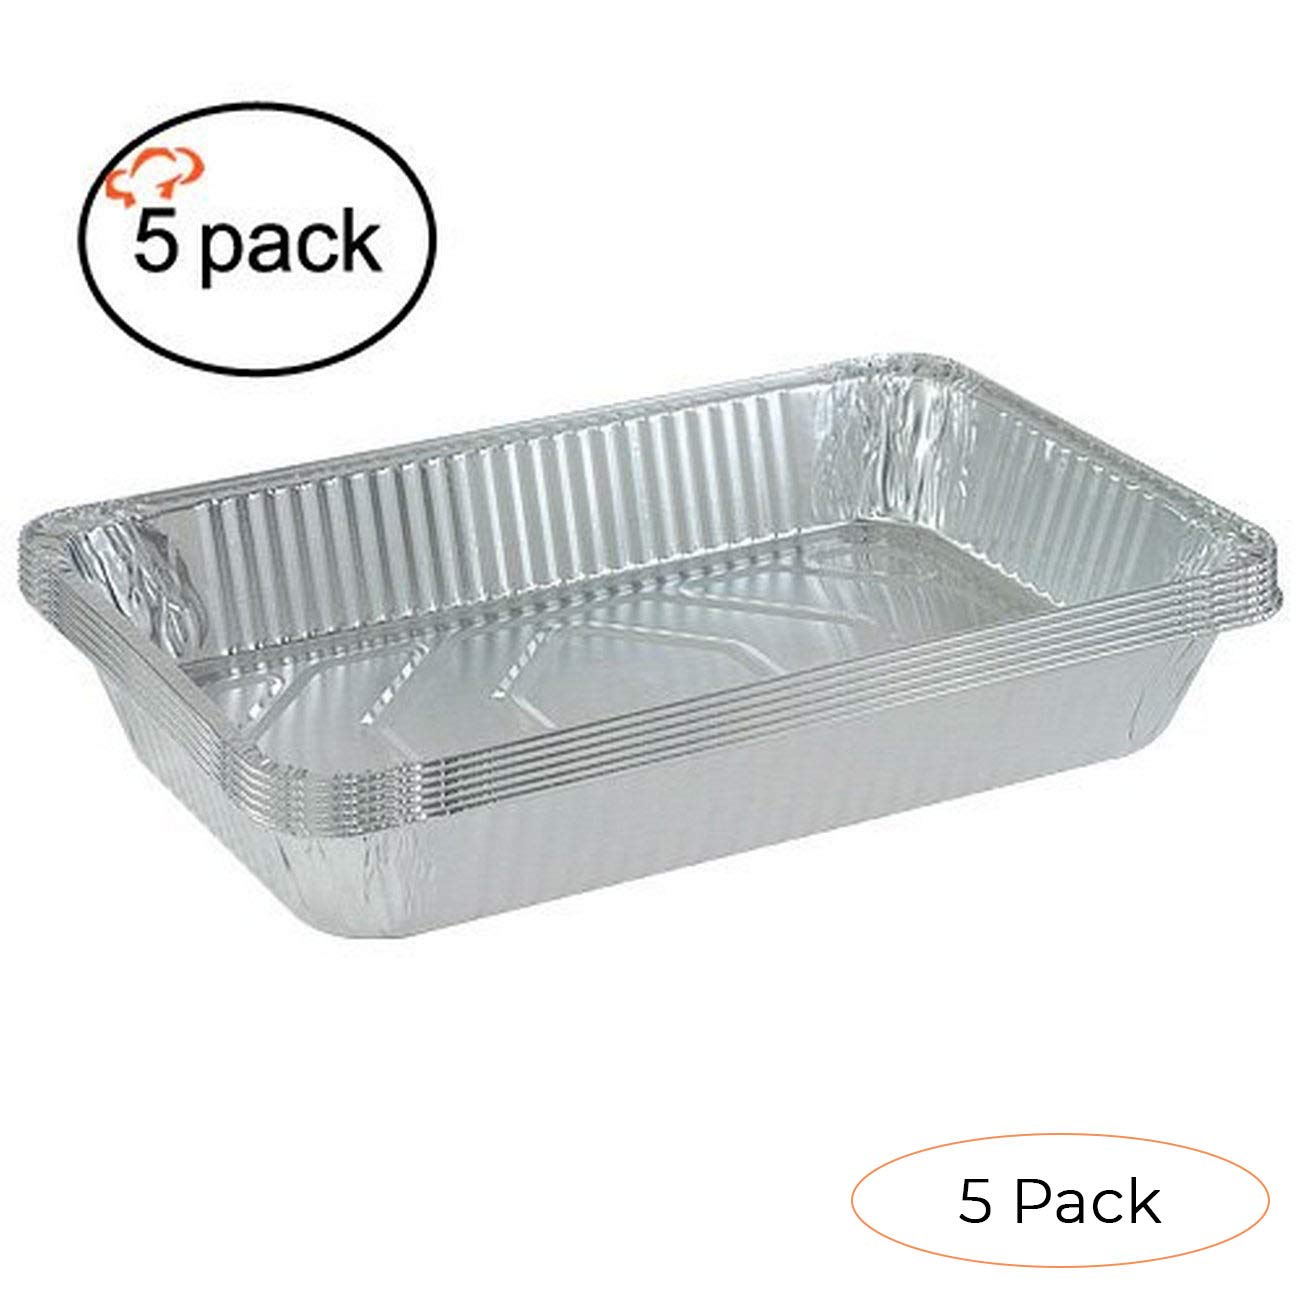 Tiger Chef 5-Pack Durable Aluminum Foil Steam Table Pans Full Size, Disposable 21 x 13 inches (Pack 2)